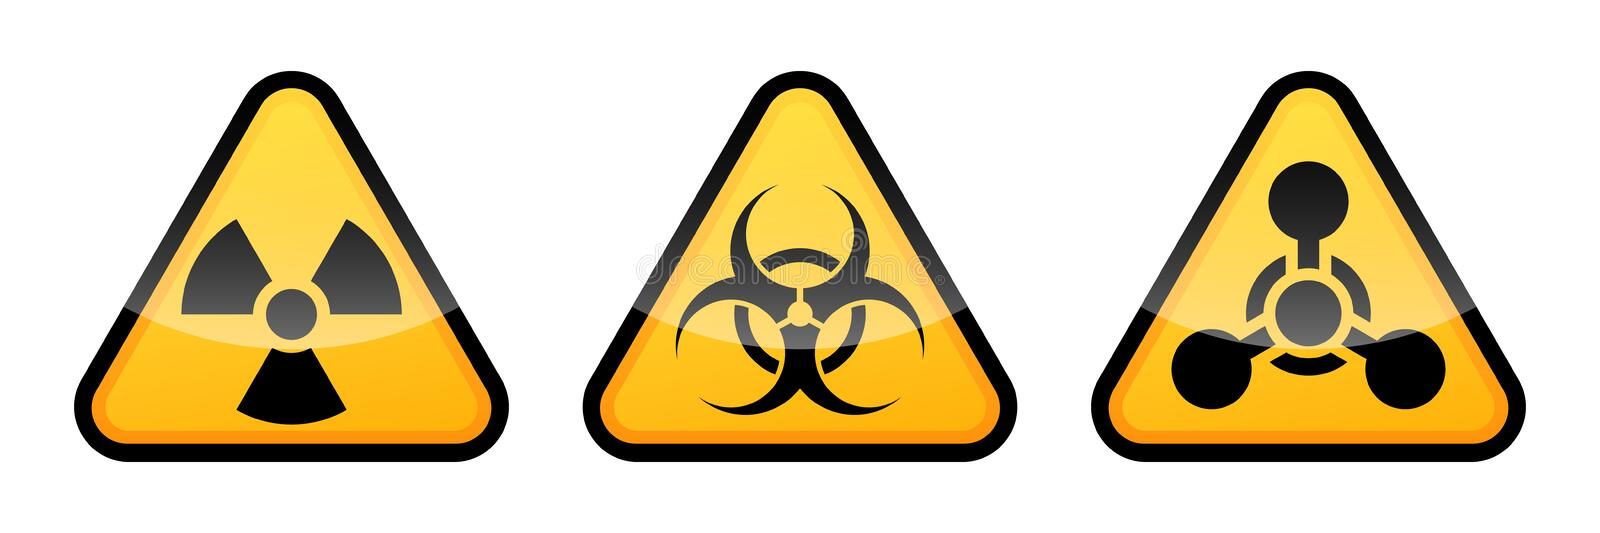 Warning vector signs set. Radiation sign, Biohazard sign, Chemical Weapons Sign. vector illustration